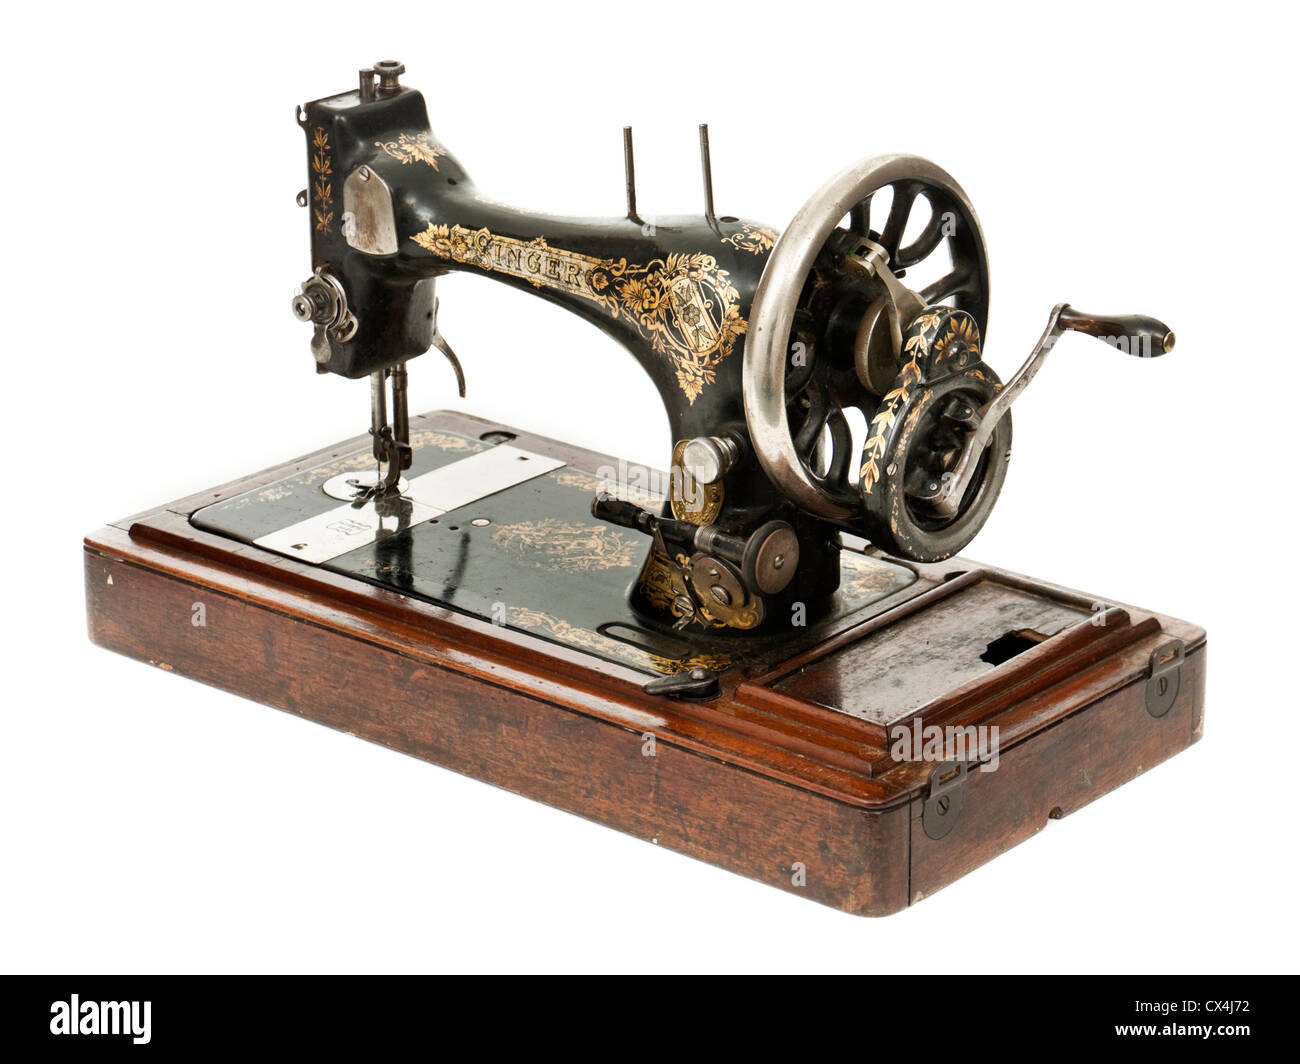 Antique singer manual sewing machine stock photo: 50503910 alamy.